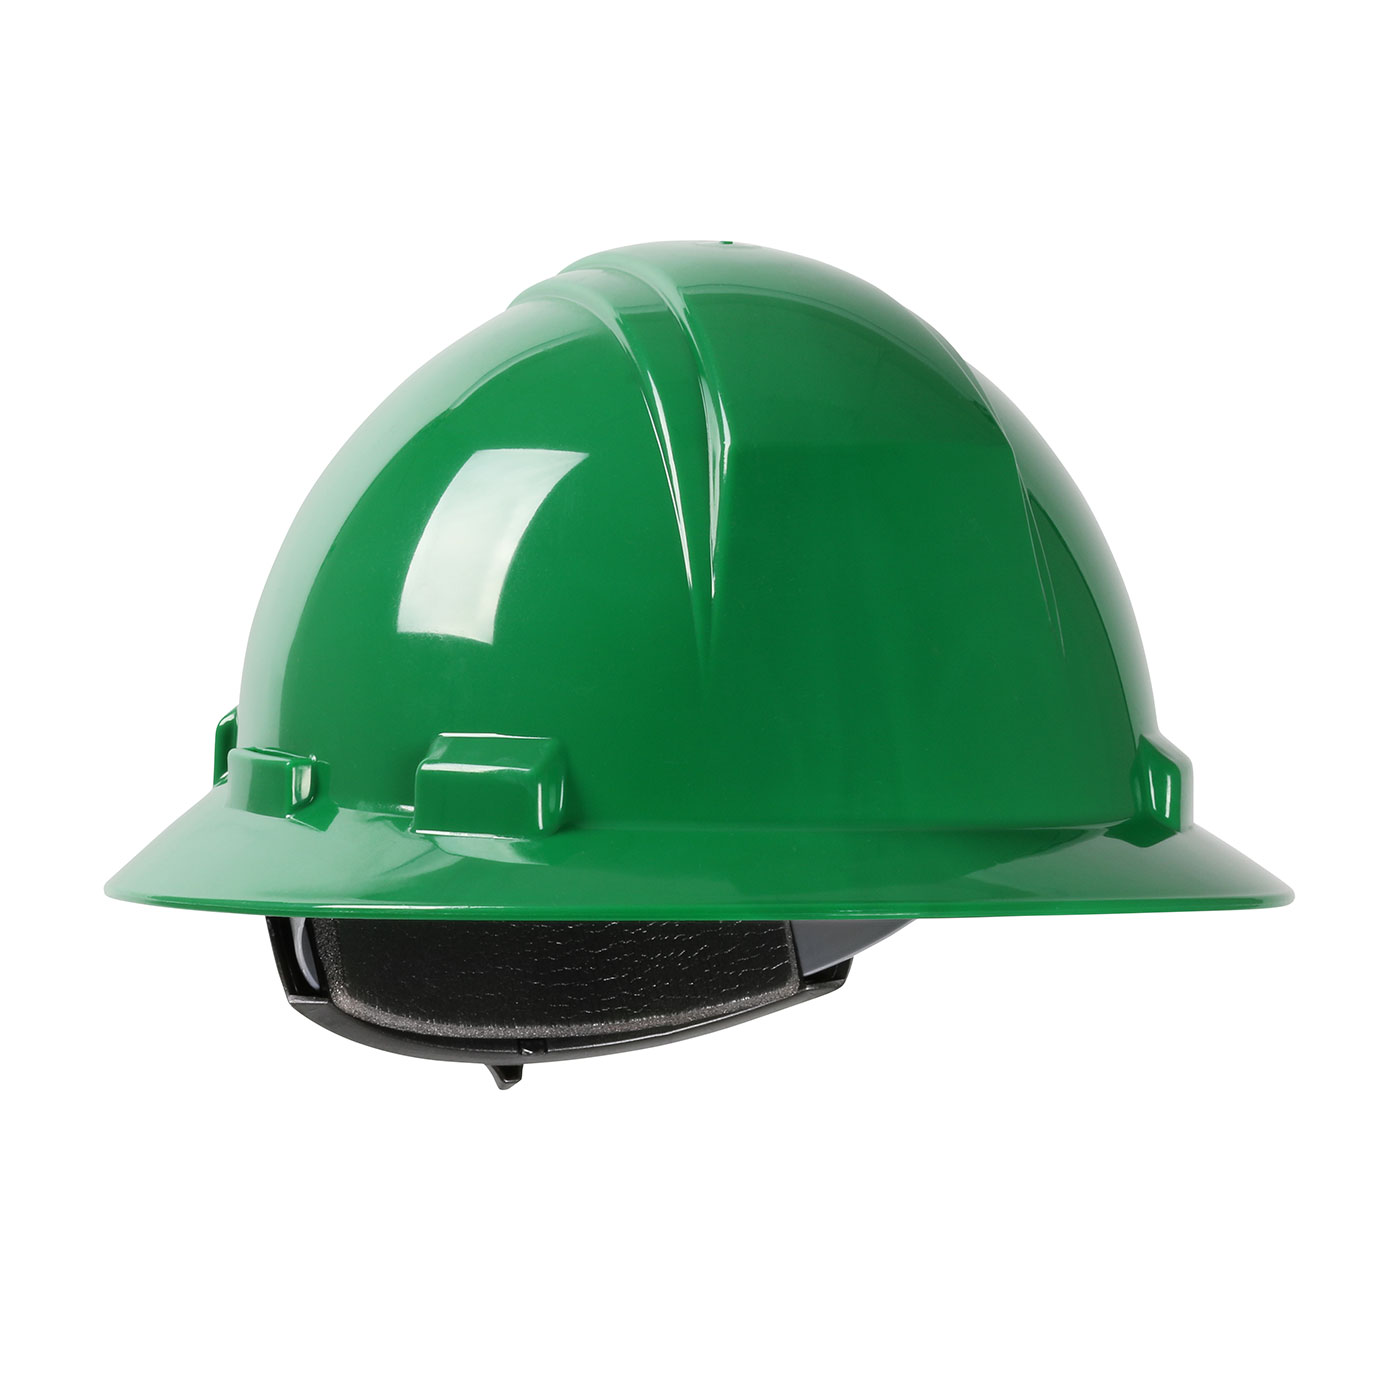 280-HP261R PIP® Dynamic Kilimanjaro™ Full Brim Hard Hat with HDPE Shell, 4-Point Textile Suspension and Wheel Ratchet Adjustment  - Green